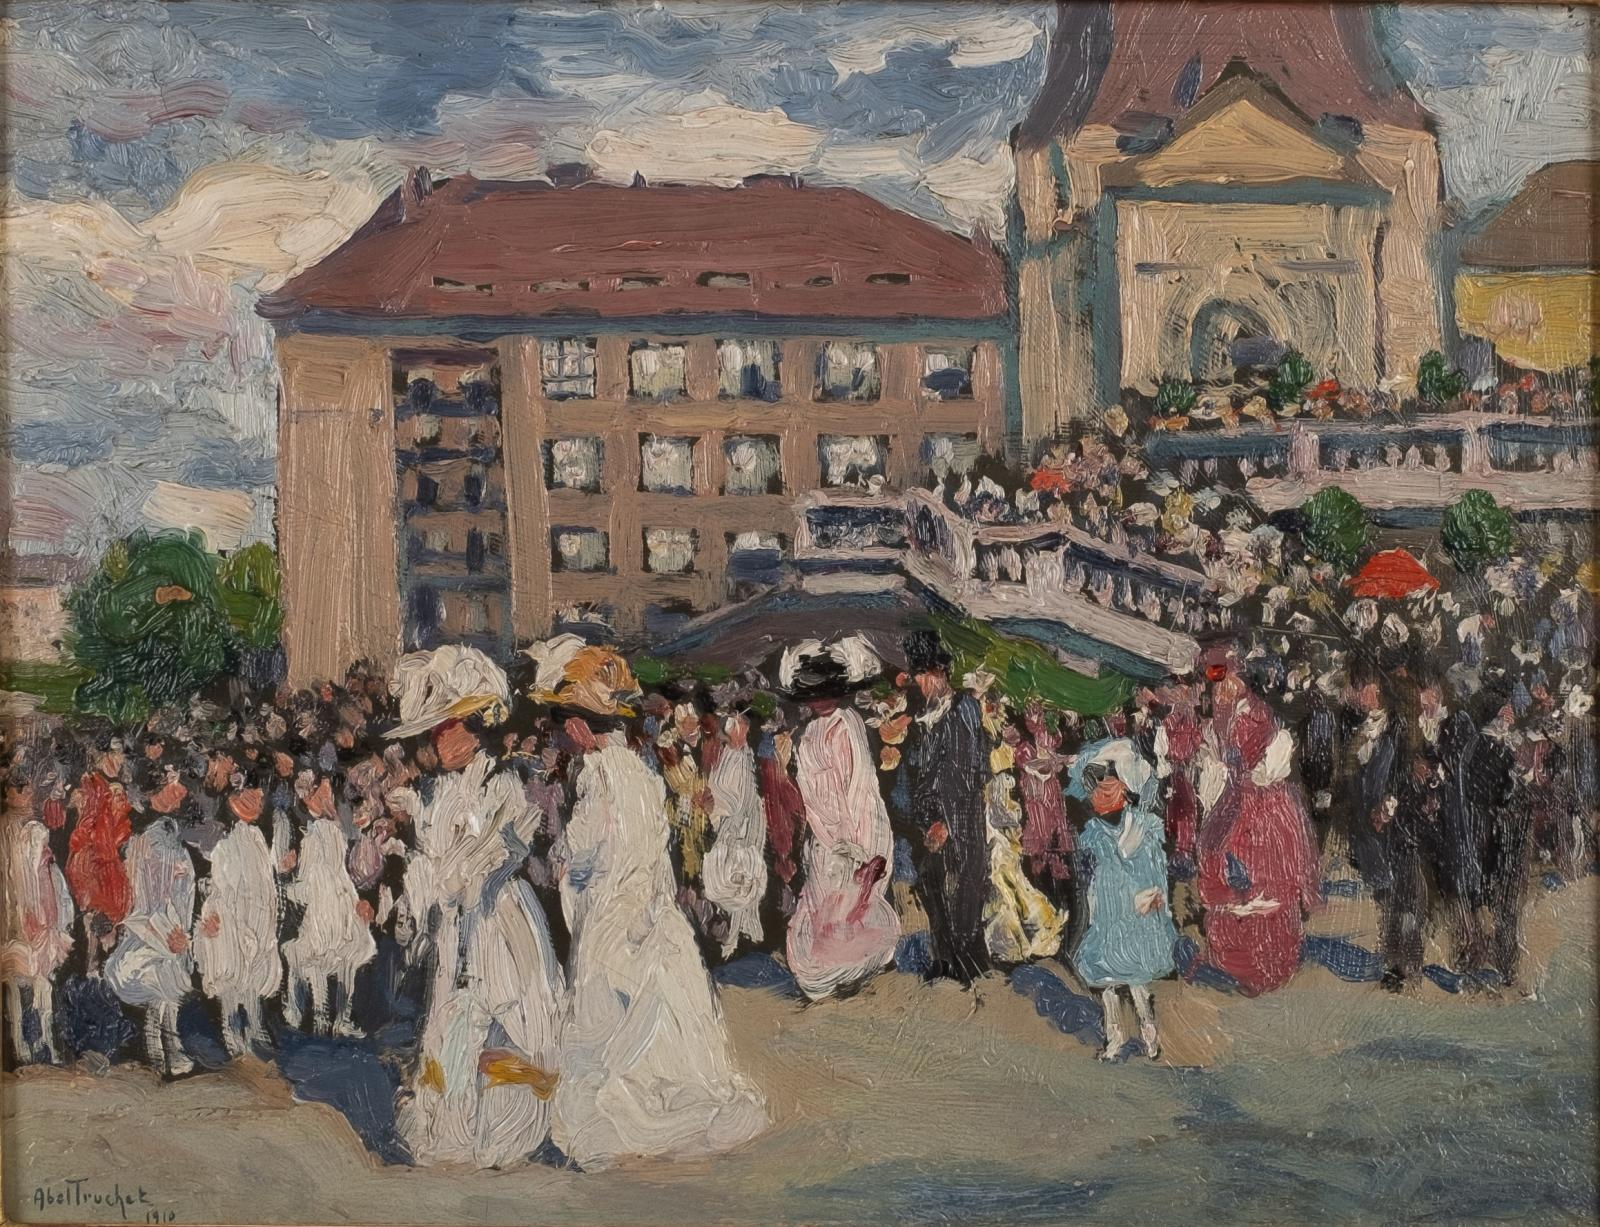 A painting of a promenade with many people and buildings